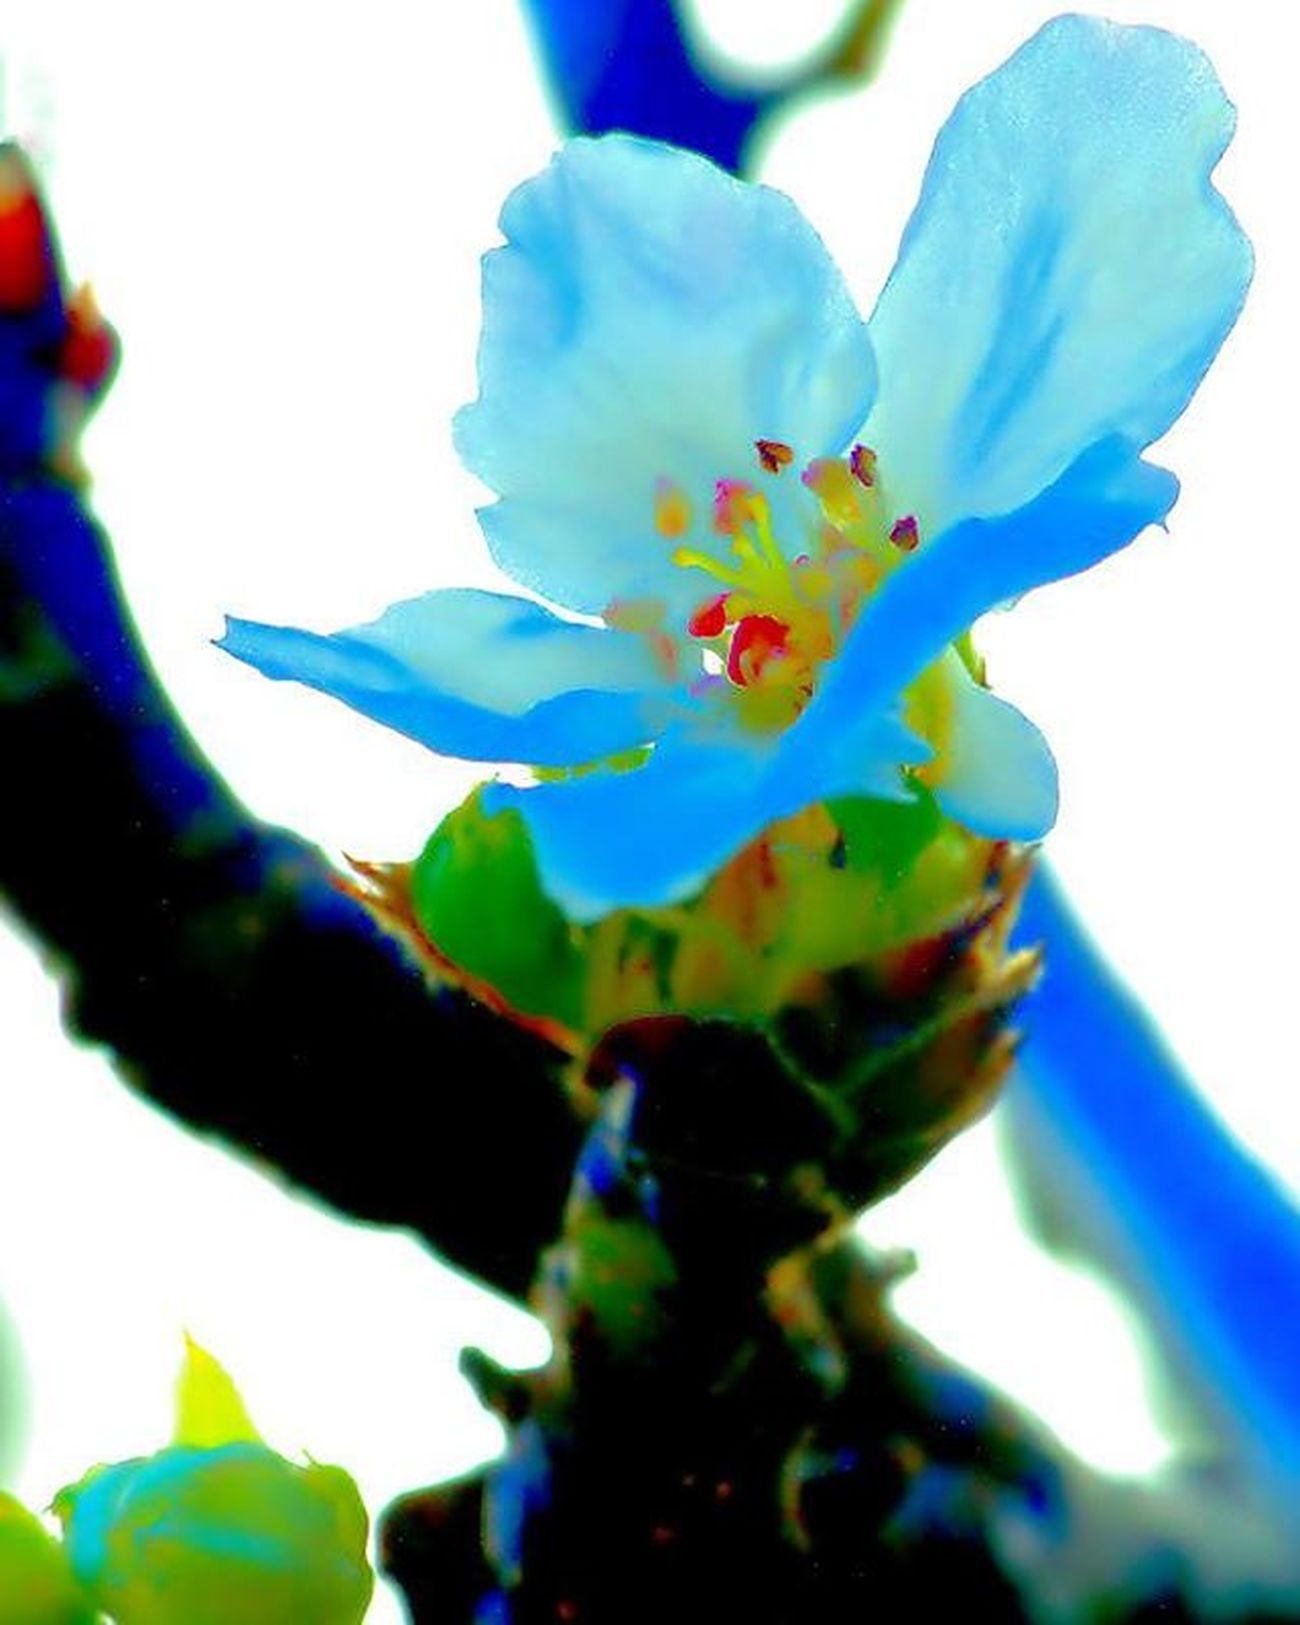 Blooming =) yes flowers are starting to bloom. For this, I looked at the perfect angle and light that shined to it and ... uh huh how about backlit with this blue light on it. yeah... colors =) 1) Macroworld_tr 2) Tv_colors 3) Ig_addicts_fresh 4) Fotofanatics_nature_ 5) Naturehippys 6) Macro_perfection 7) Sn_feb4 8) Natureloversgallery 9) Pocket_family 0) Splendid_dof 1) Tgif_nature 2) Heavenlyflowerz 3) Igglobalclubmacro 4) Pocket_colors 5) Fotofanatics_macro_ 6) Electric_macro 7) Resourcemag 8) Na_natures_art 9) Splendid_lite 0) Igbest_macros 1) Fs_macro 2) Wms_macro 3) Macro_secrets 4) Ig_alls 5) Macro_holic 6) tv_depthoffield 7) jj_indetail 8) best_macro 9) show_us_macro 0) macro_vision